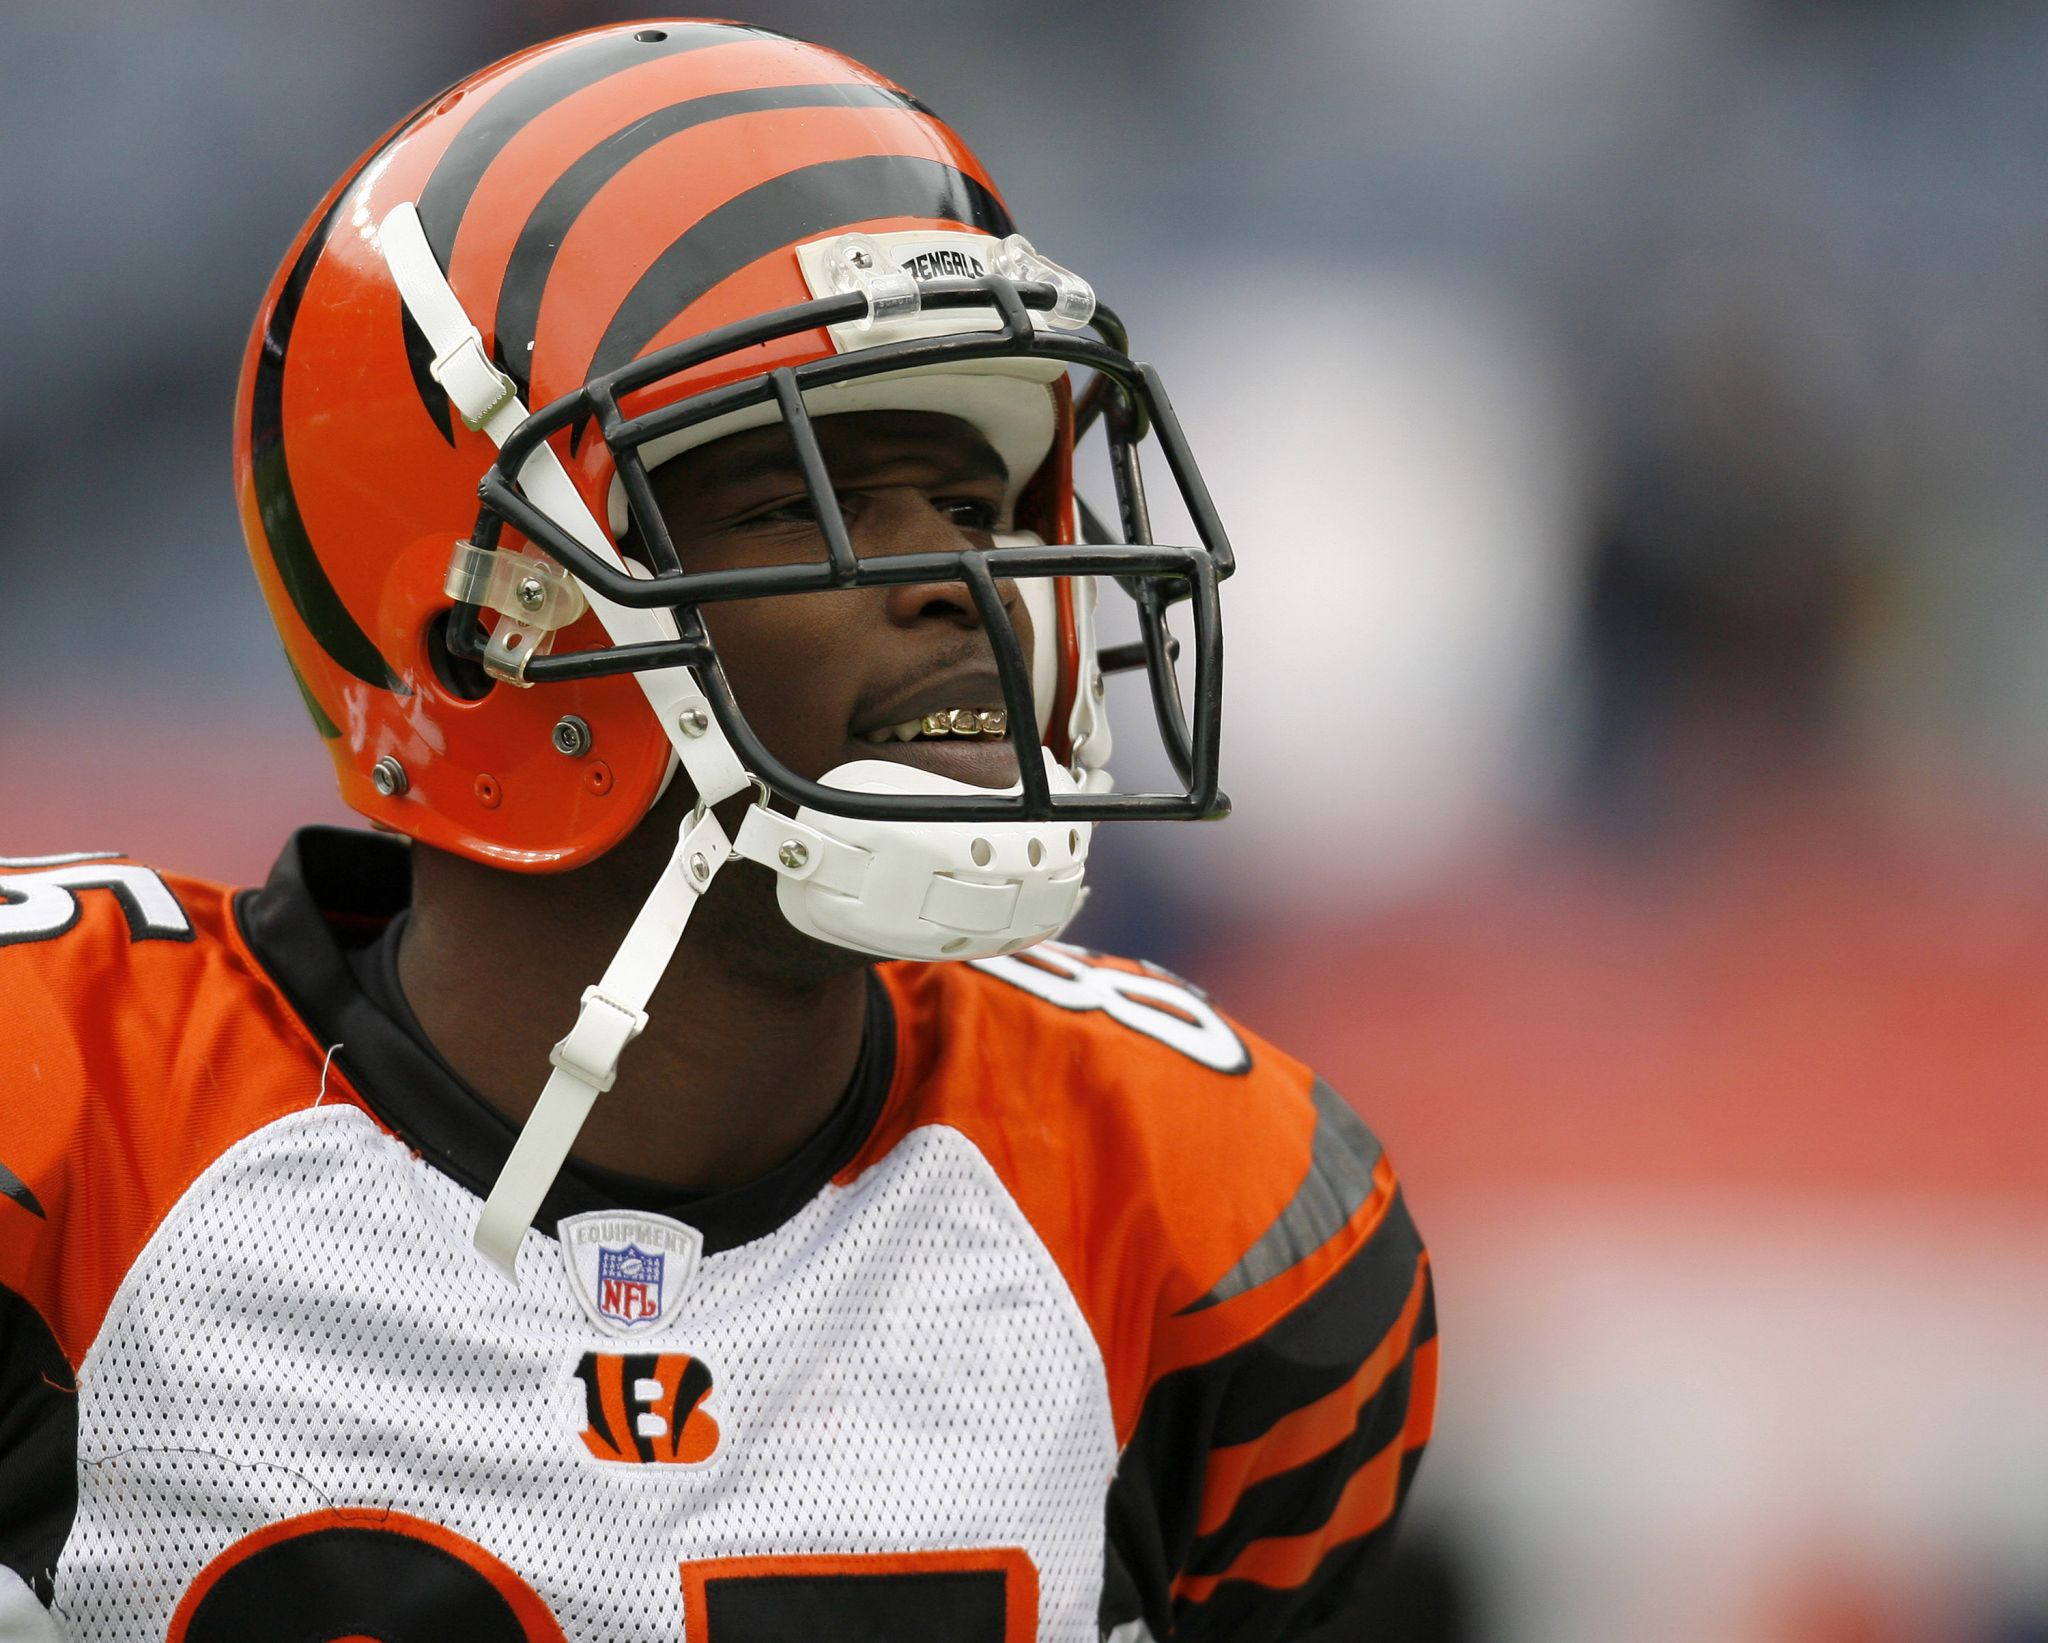 XFL commish Oliver Luck on 'no-show' Chad Johnson: 'He's off our radar screen'